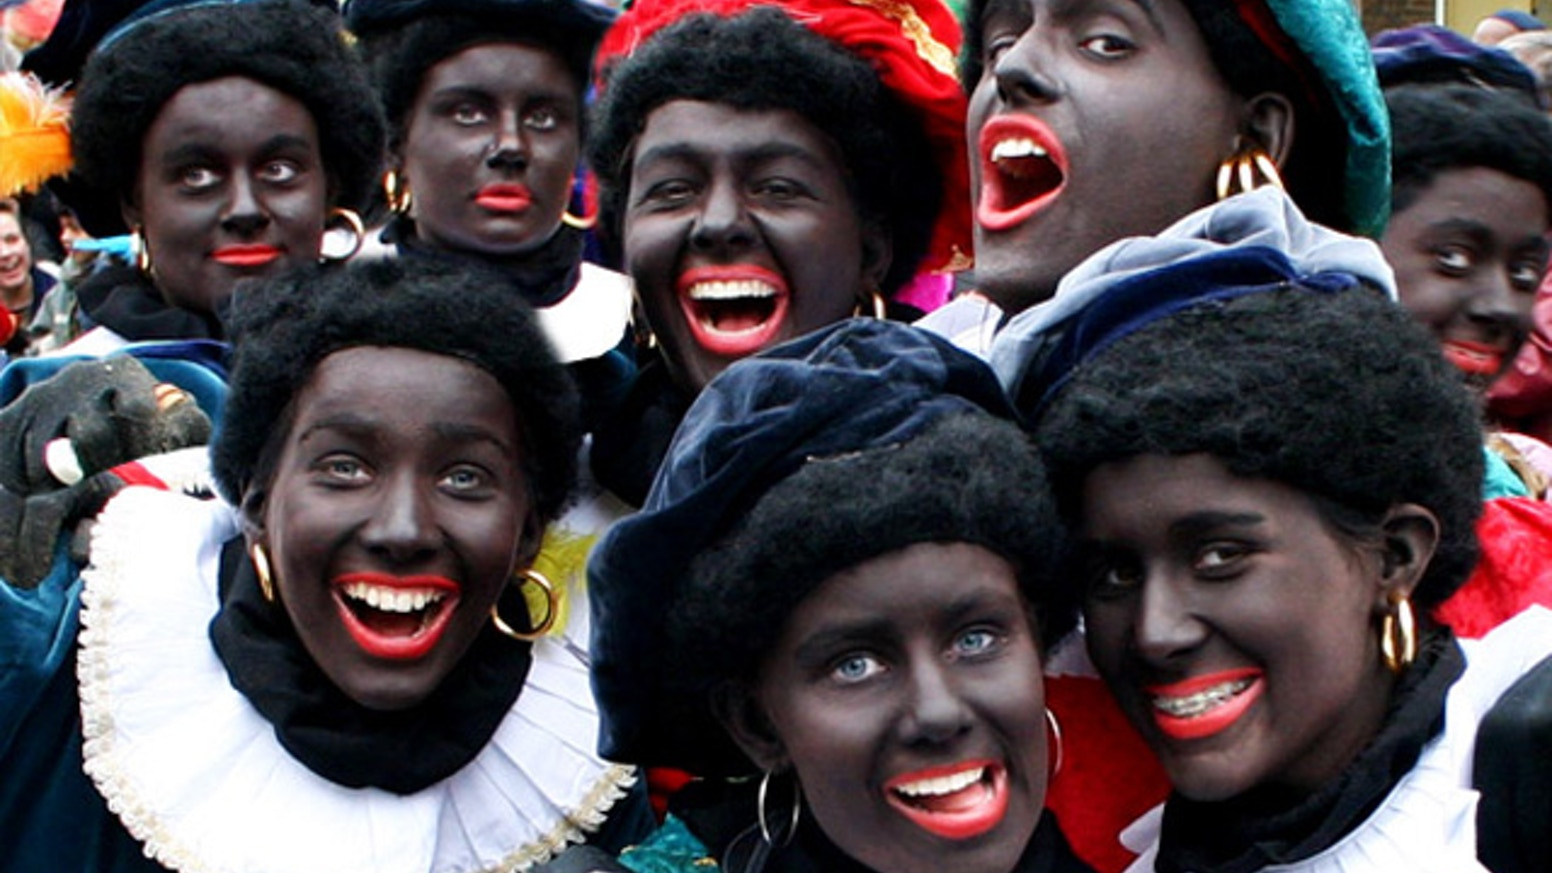 A film about the blackface tradition of Zwarte Piet in the Netherlands. Problematic? Or are the Dutch just having holiday fun?